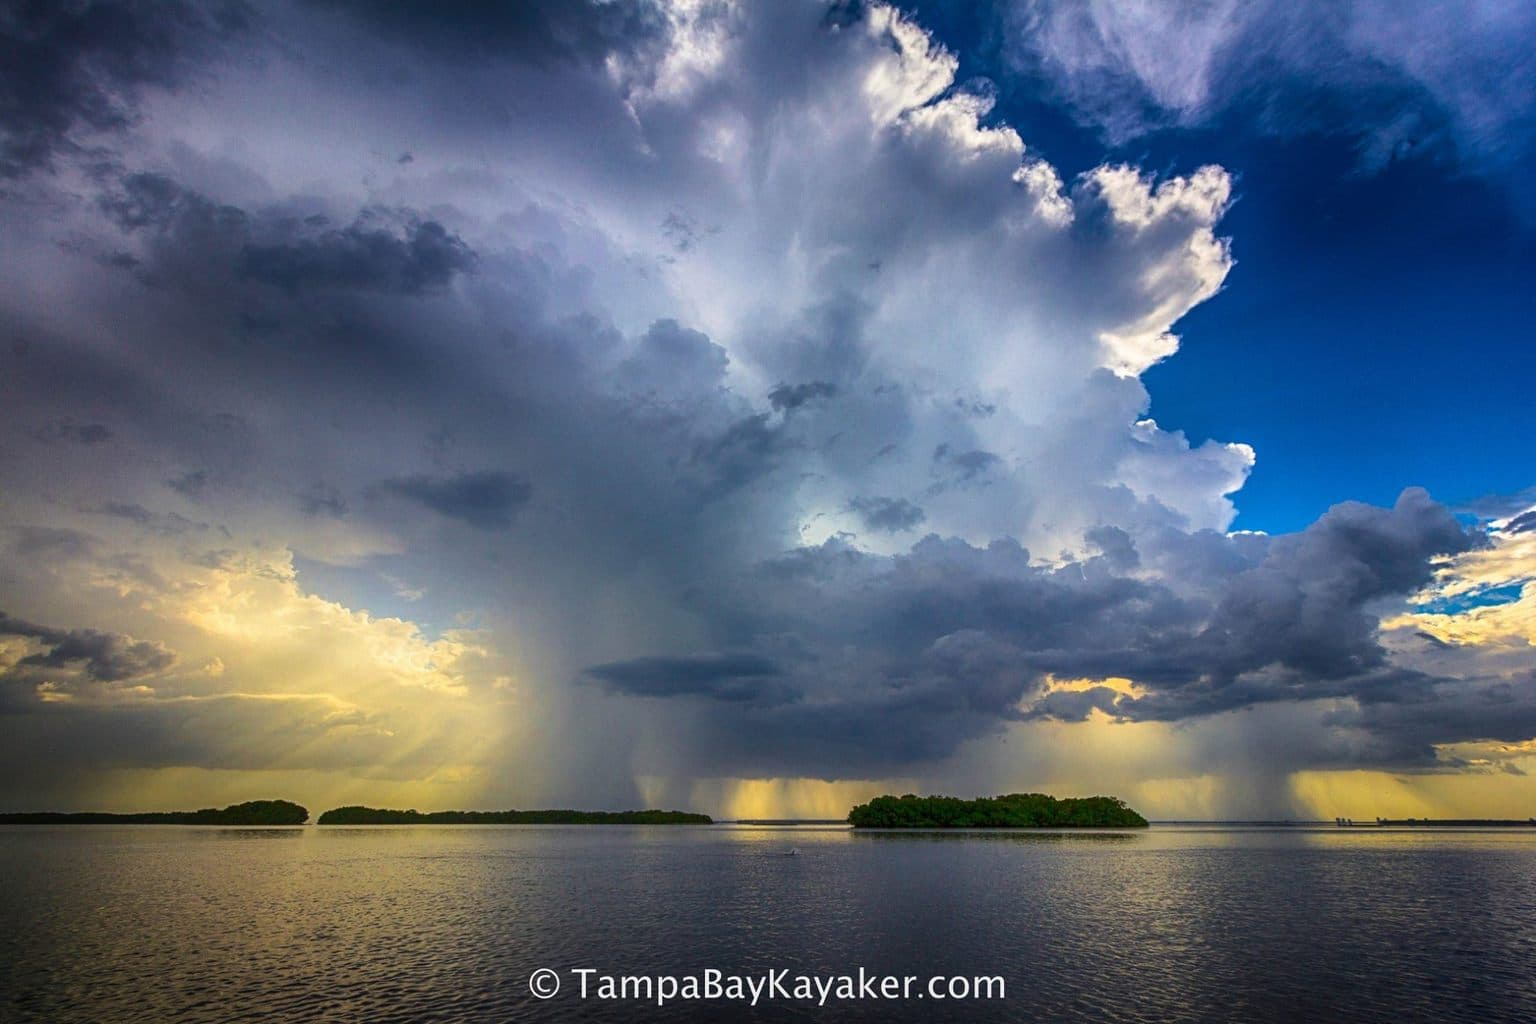 The Rain of Light - Tampa Bay